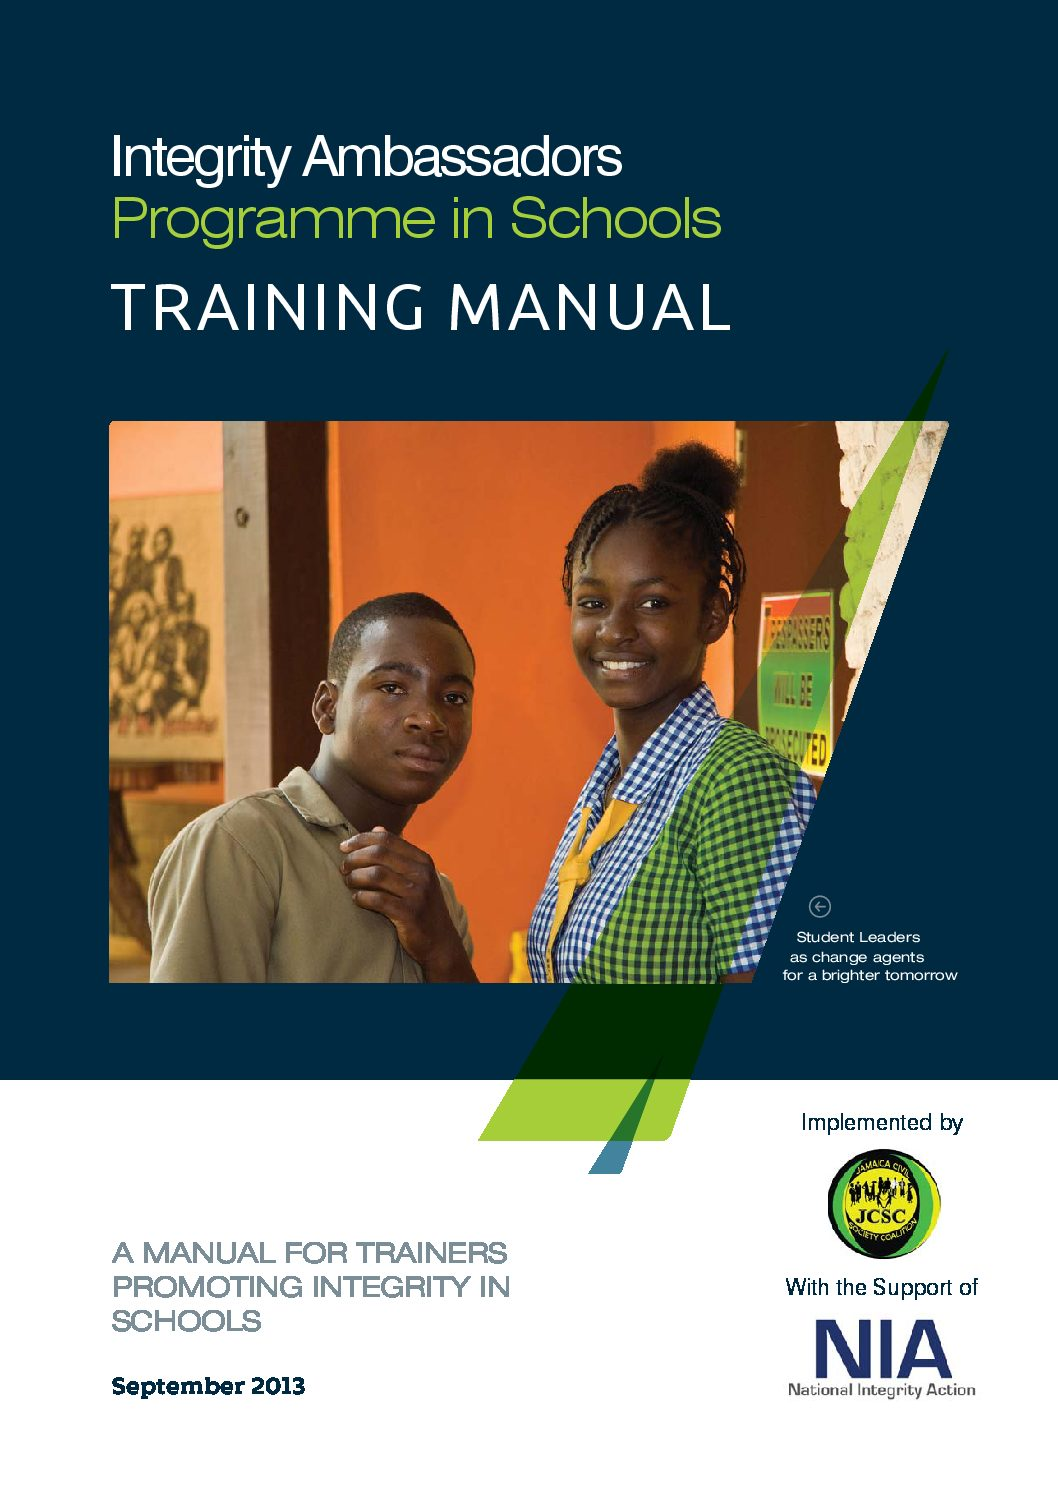 Integrity Ambassadors Training Manual